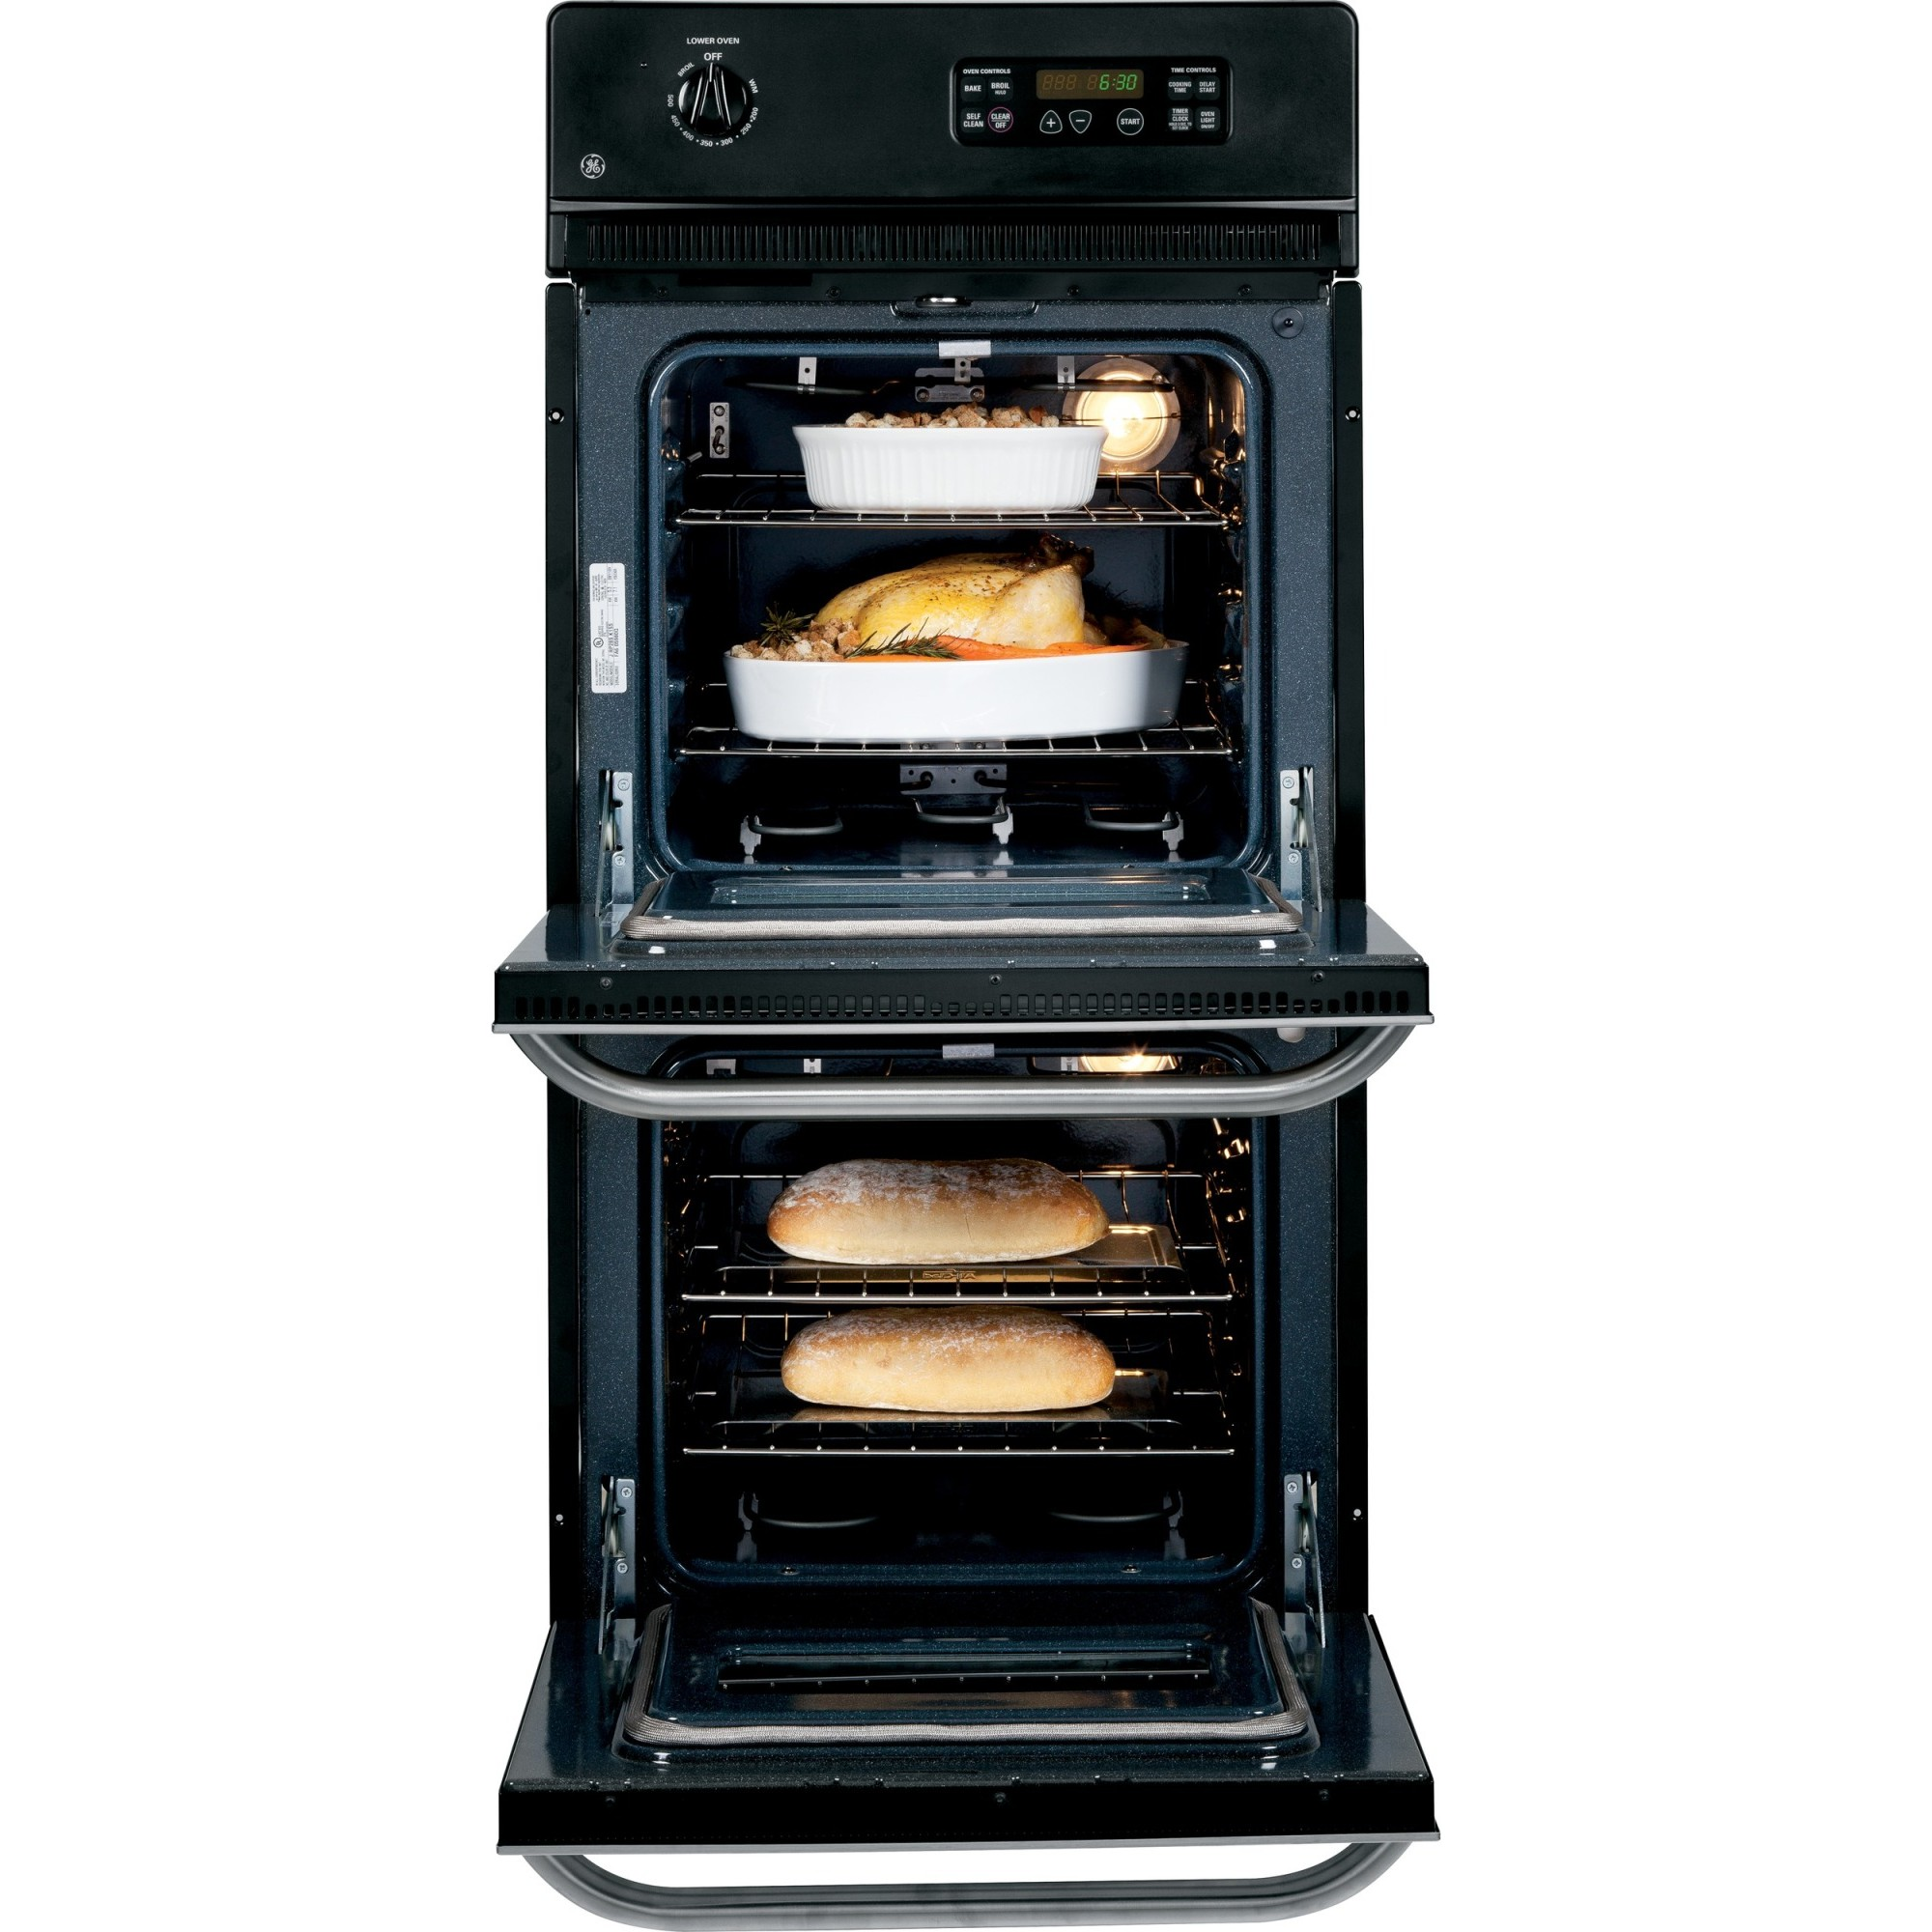 Jrp28skss Ge 24 Double Wall Oven